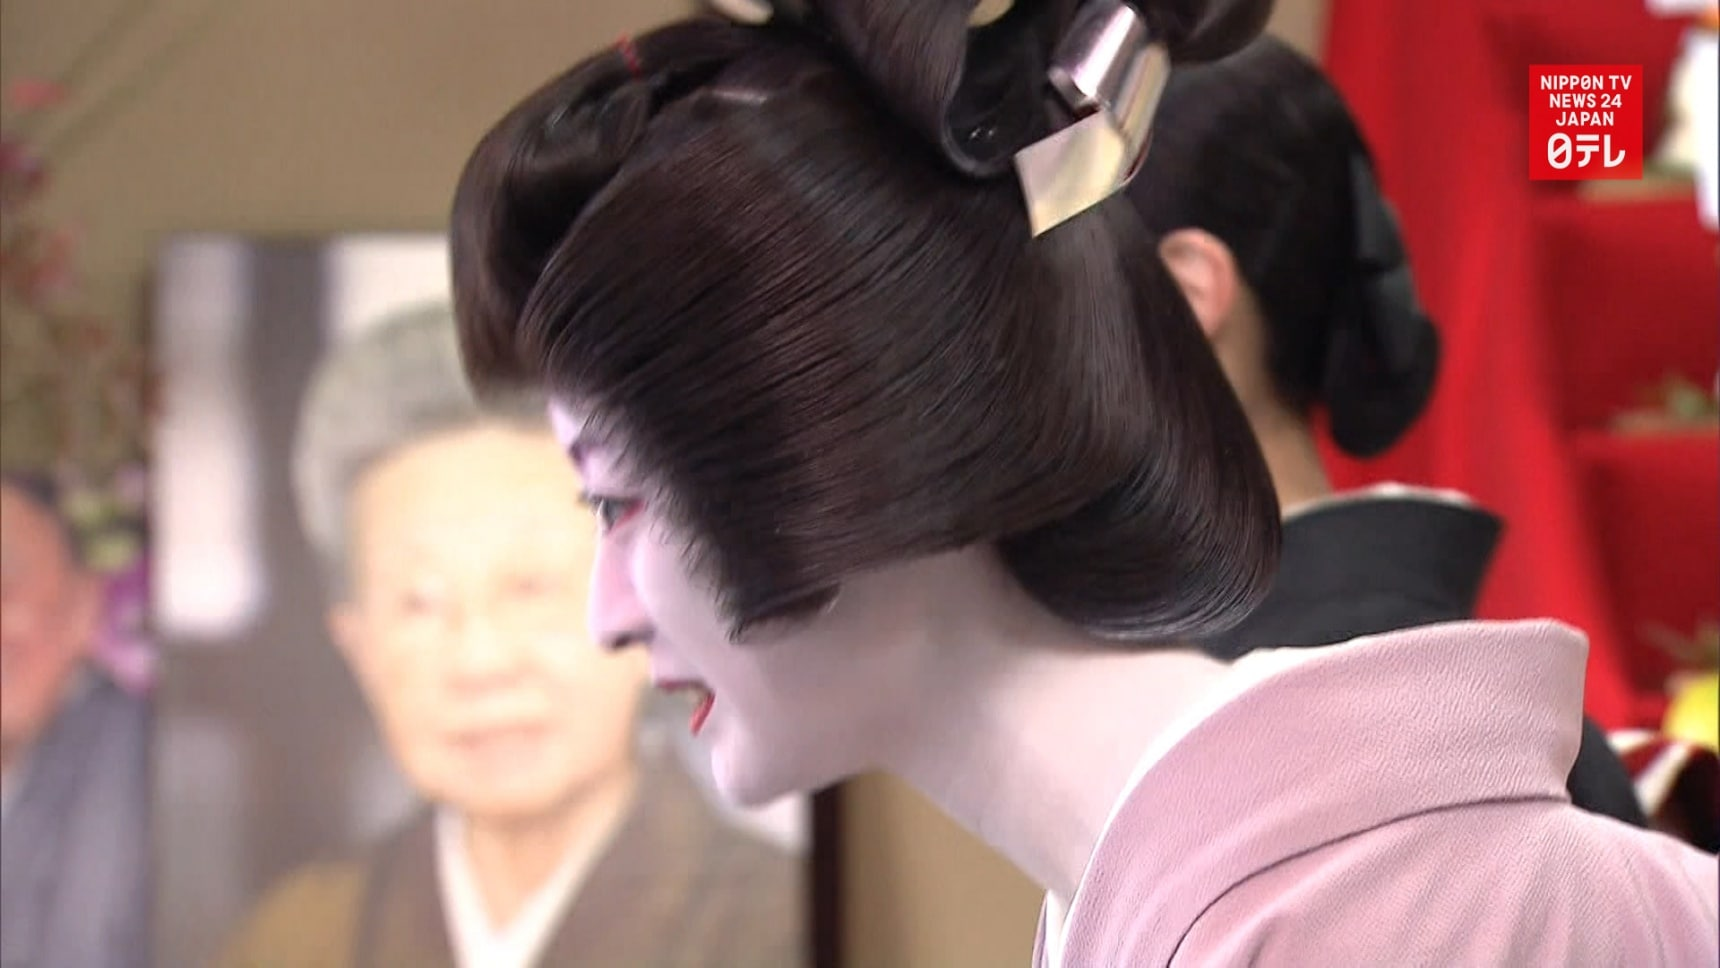 Geisha in Kyoto Prepare for New Year